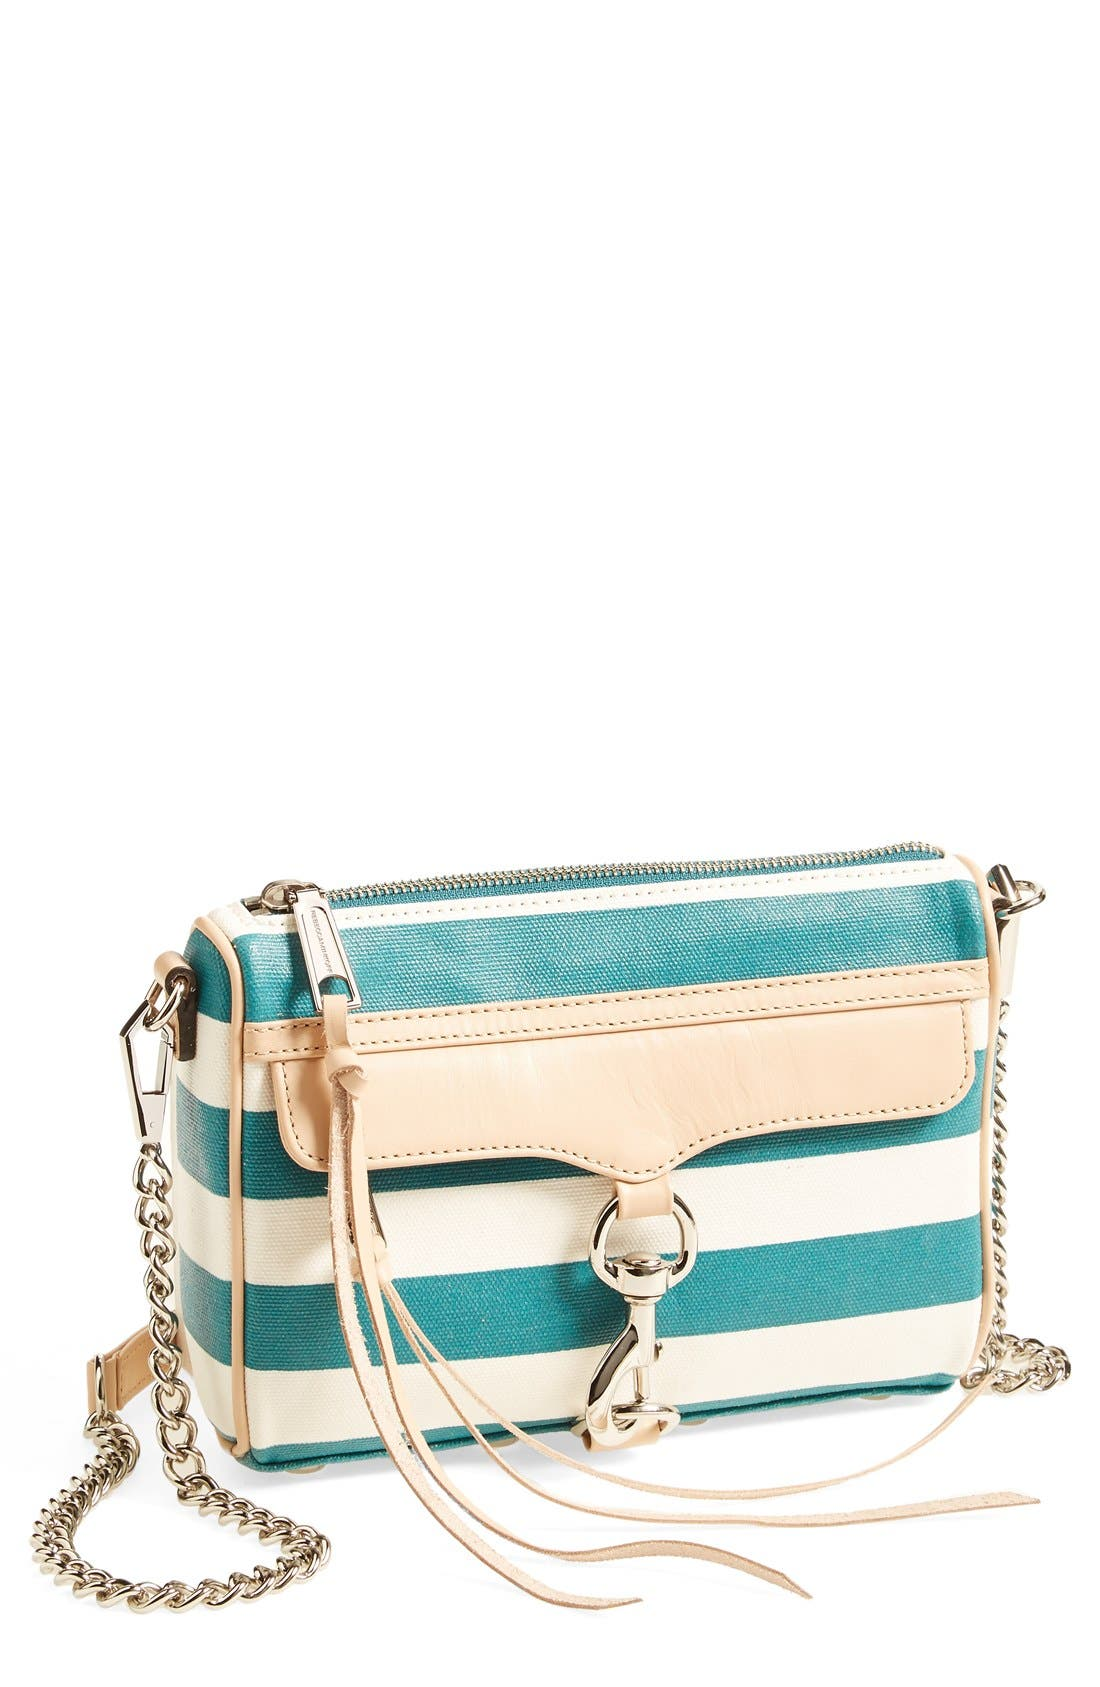 Main Image - Rebecca Minkoff 'Mini MAC' Convertible Crossbody Bag